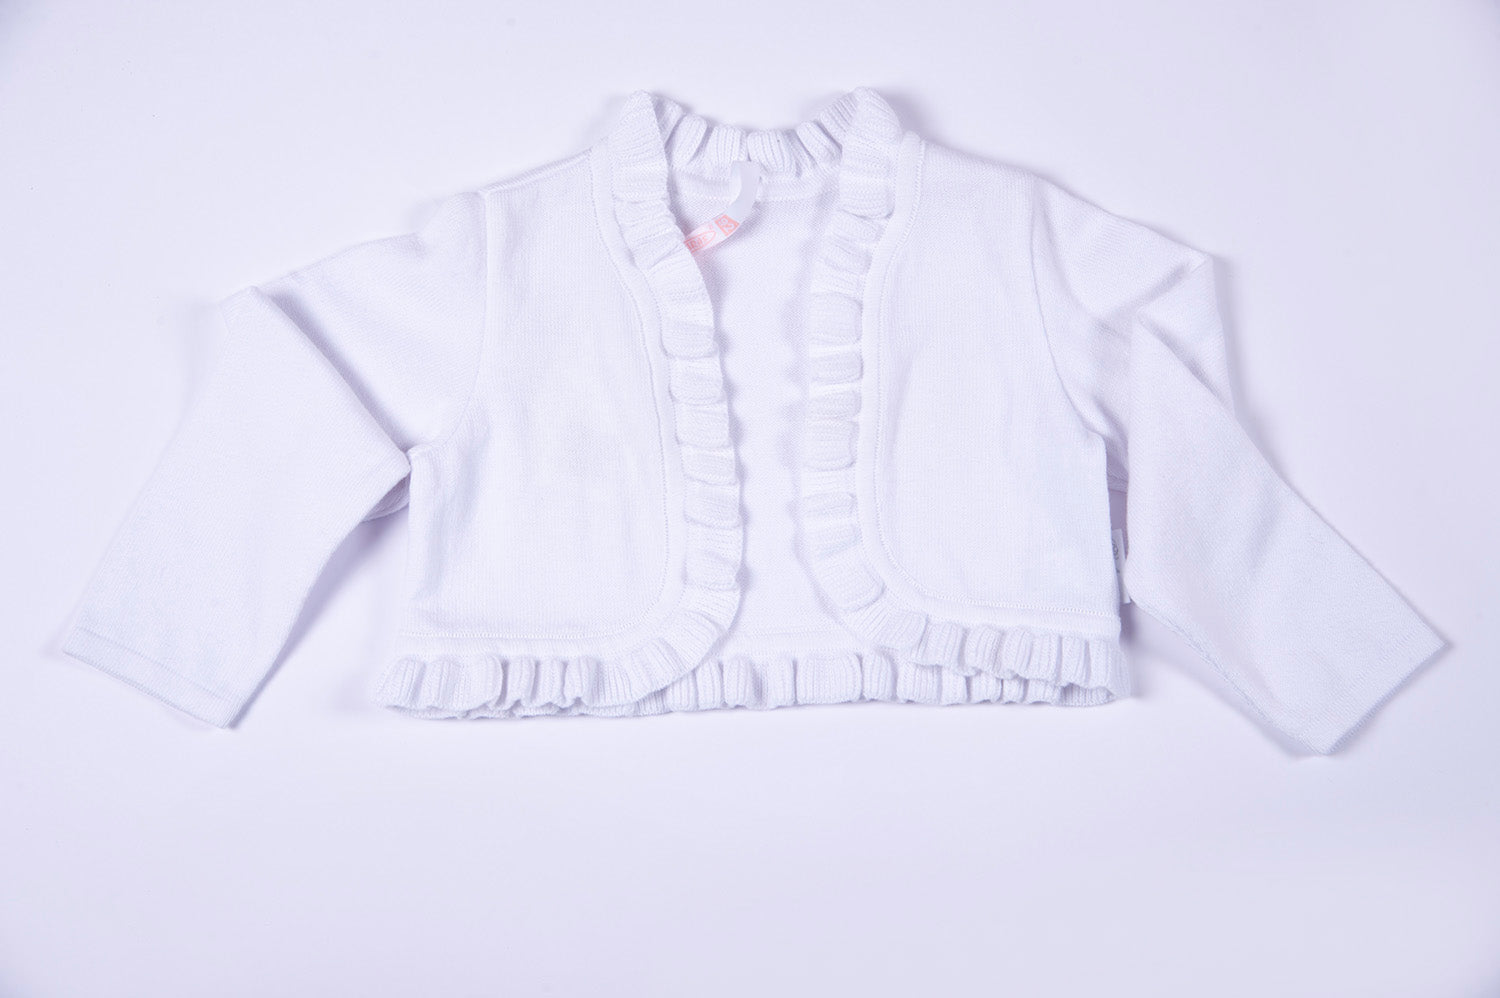 Barbaras open cardigan with frills